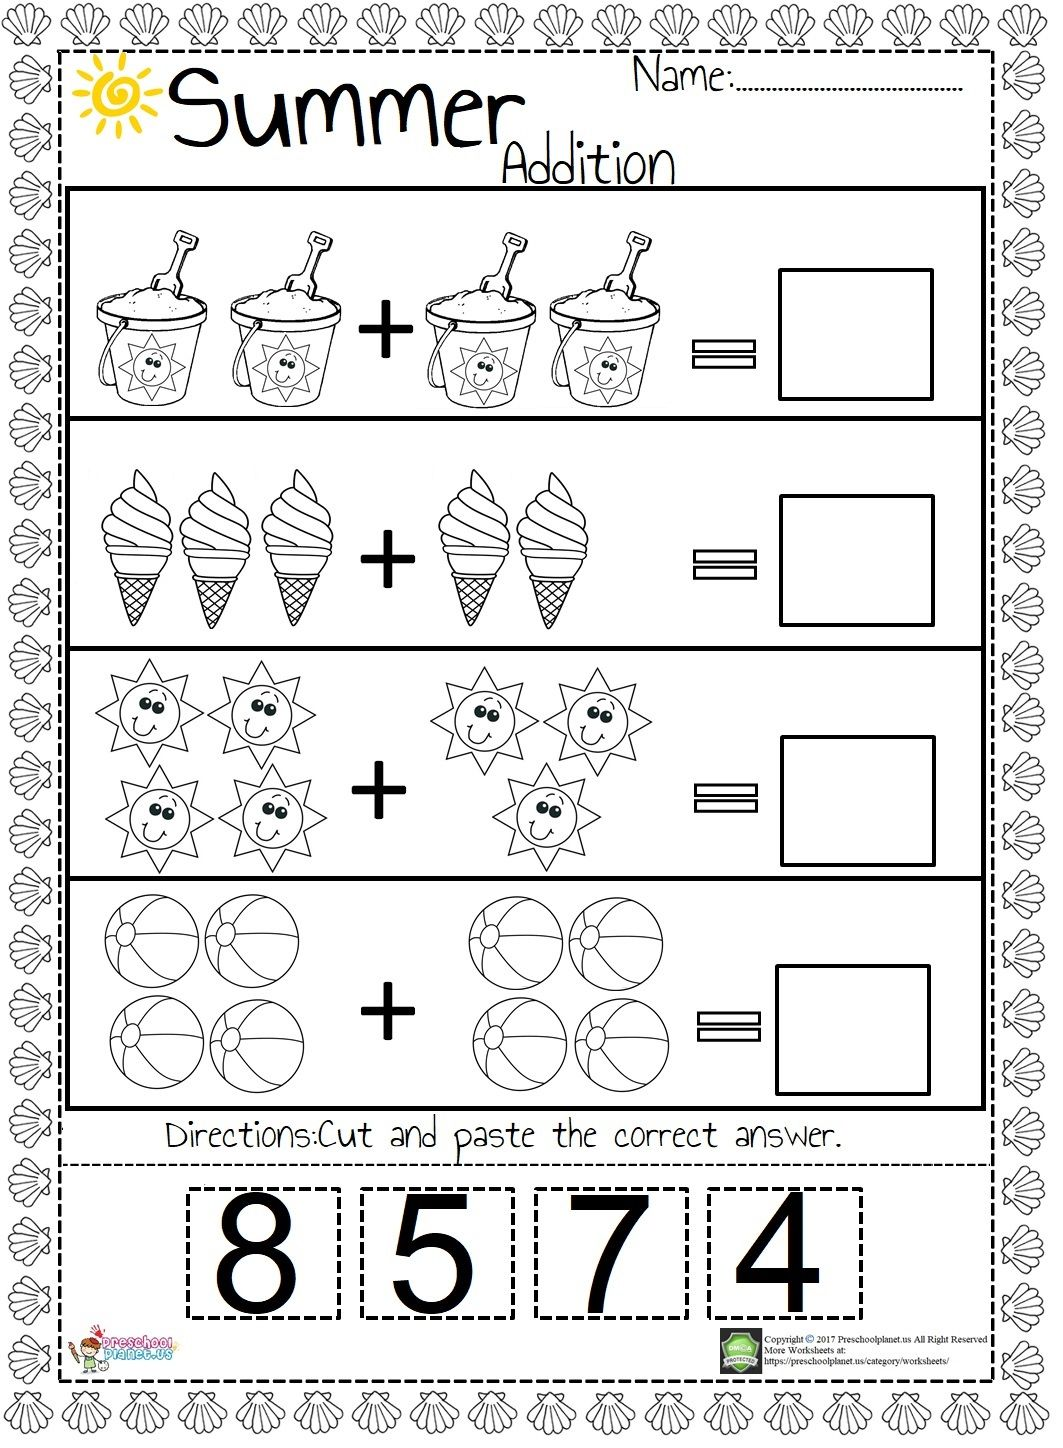 Summer Addition Worksheet Kindergarten Addition Worksheets Kindergarten Math Worksheets Addition Addition Worksheets